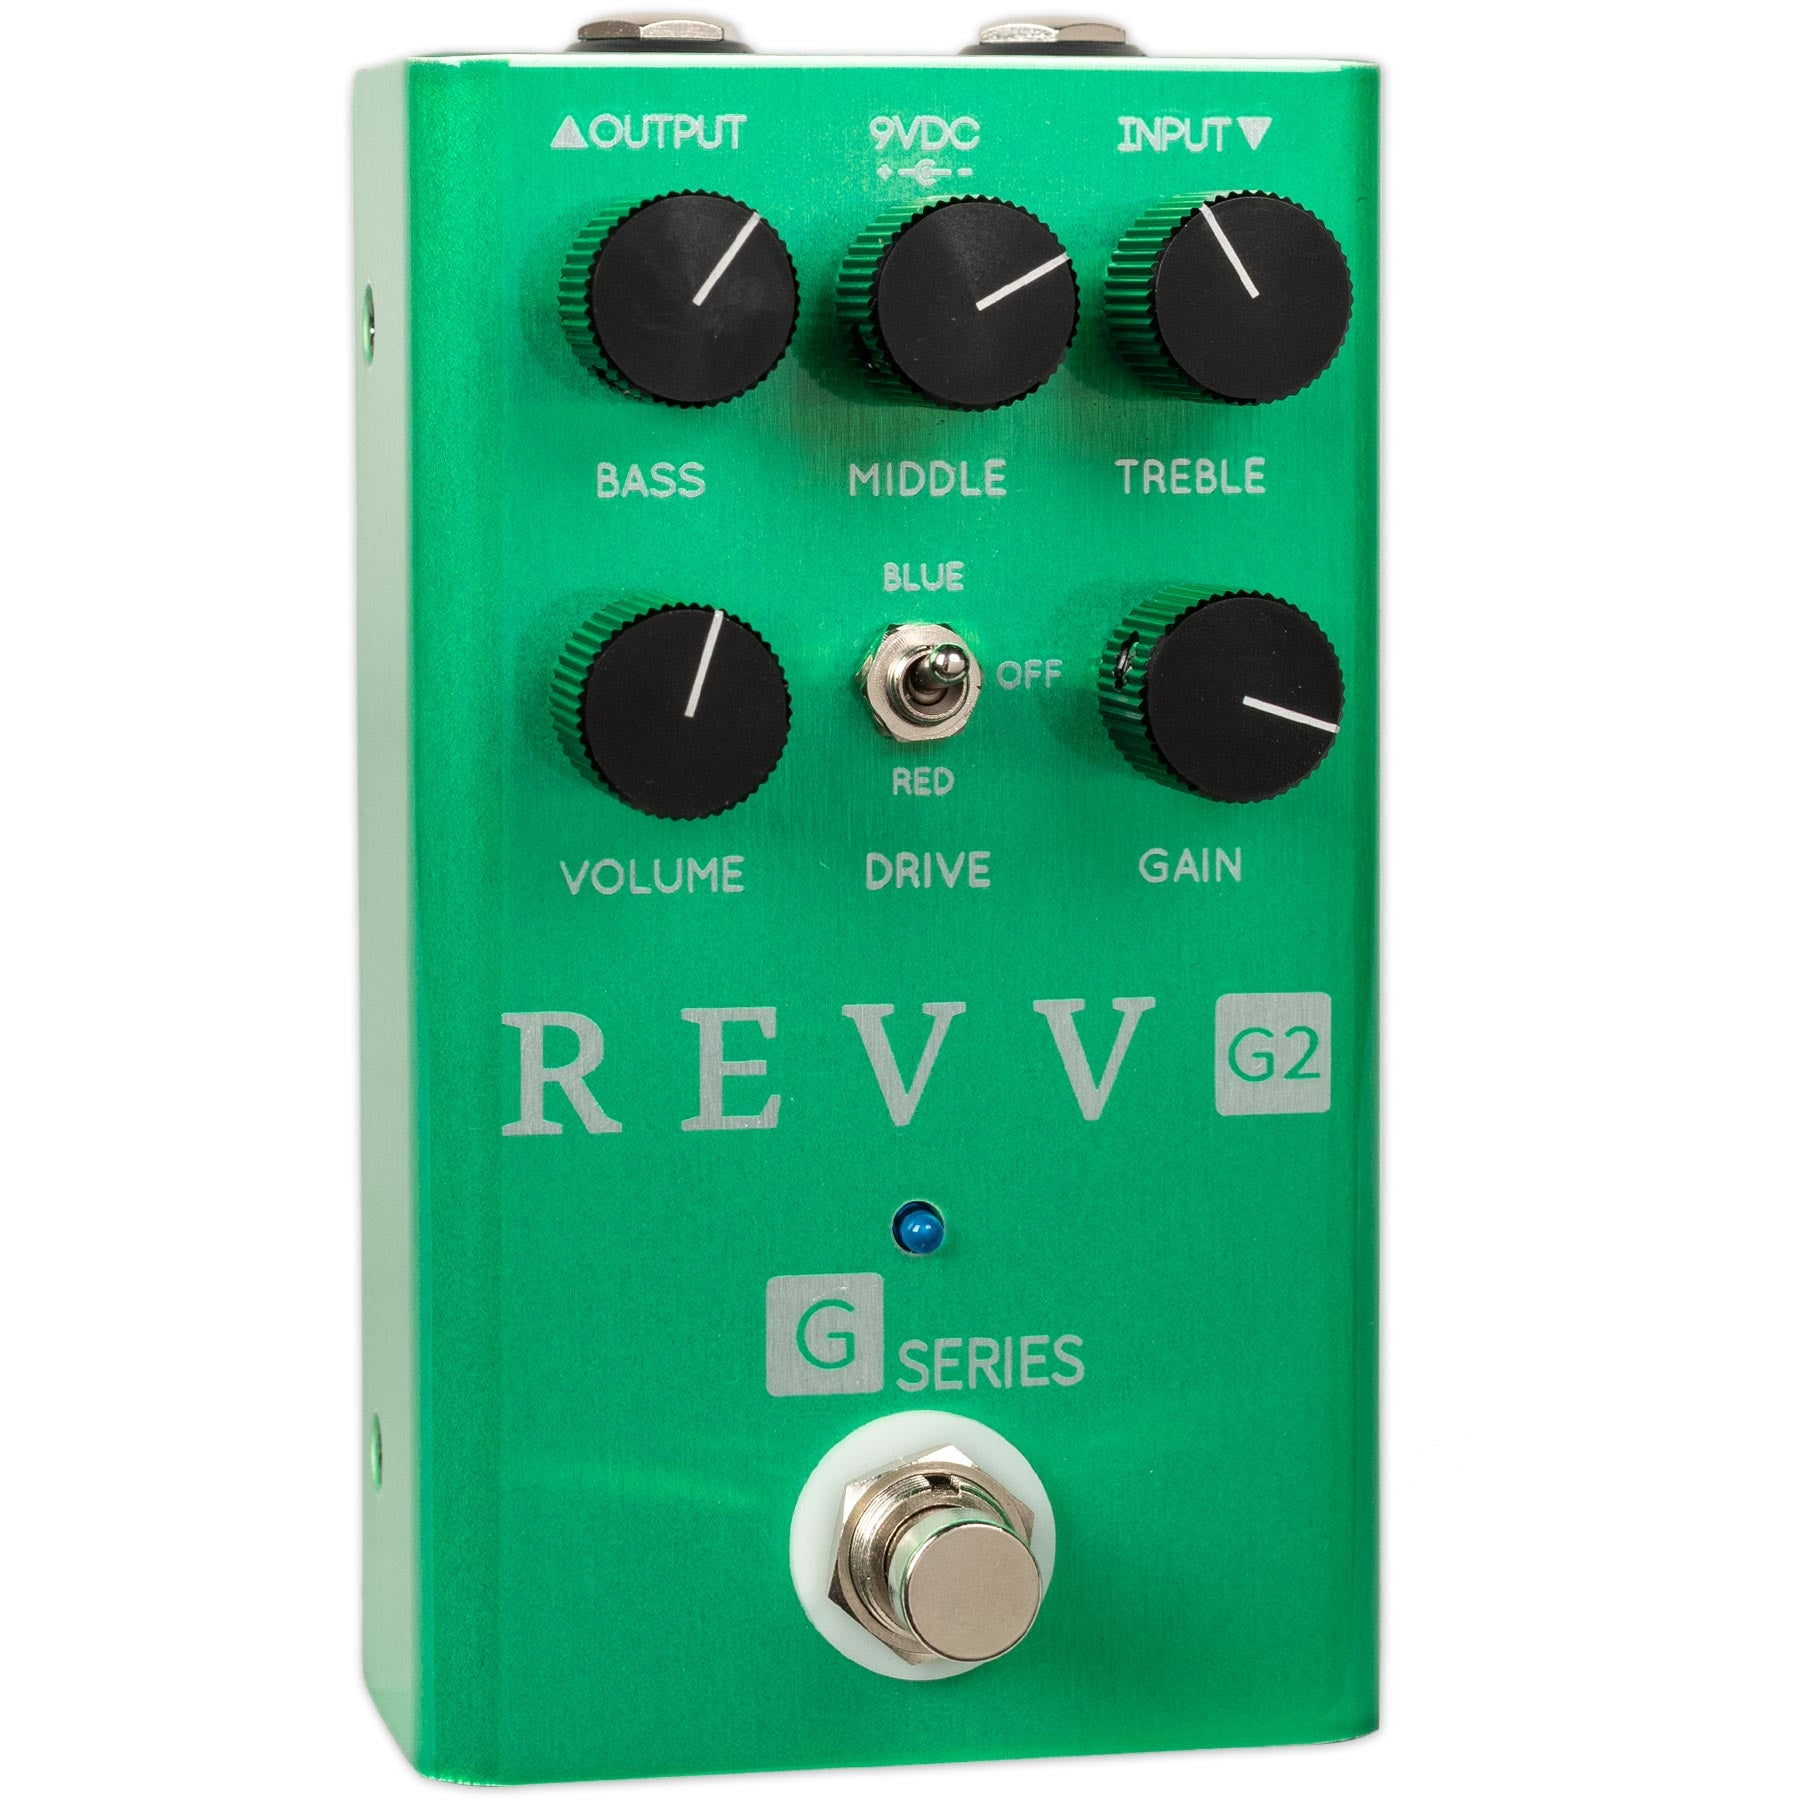 REVV G2 GREEN CHANNEL OVERDRIVE/CRUNCH PEDAL